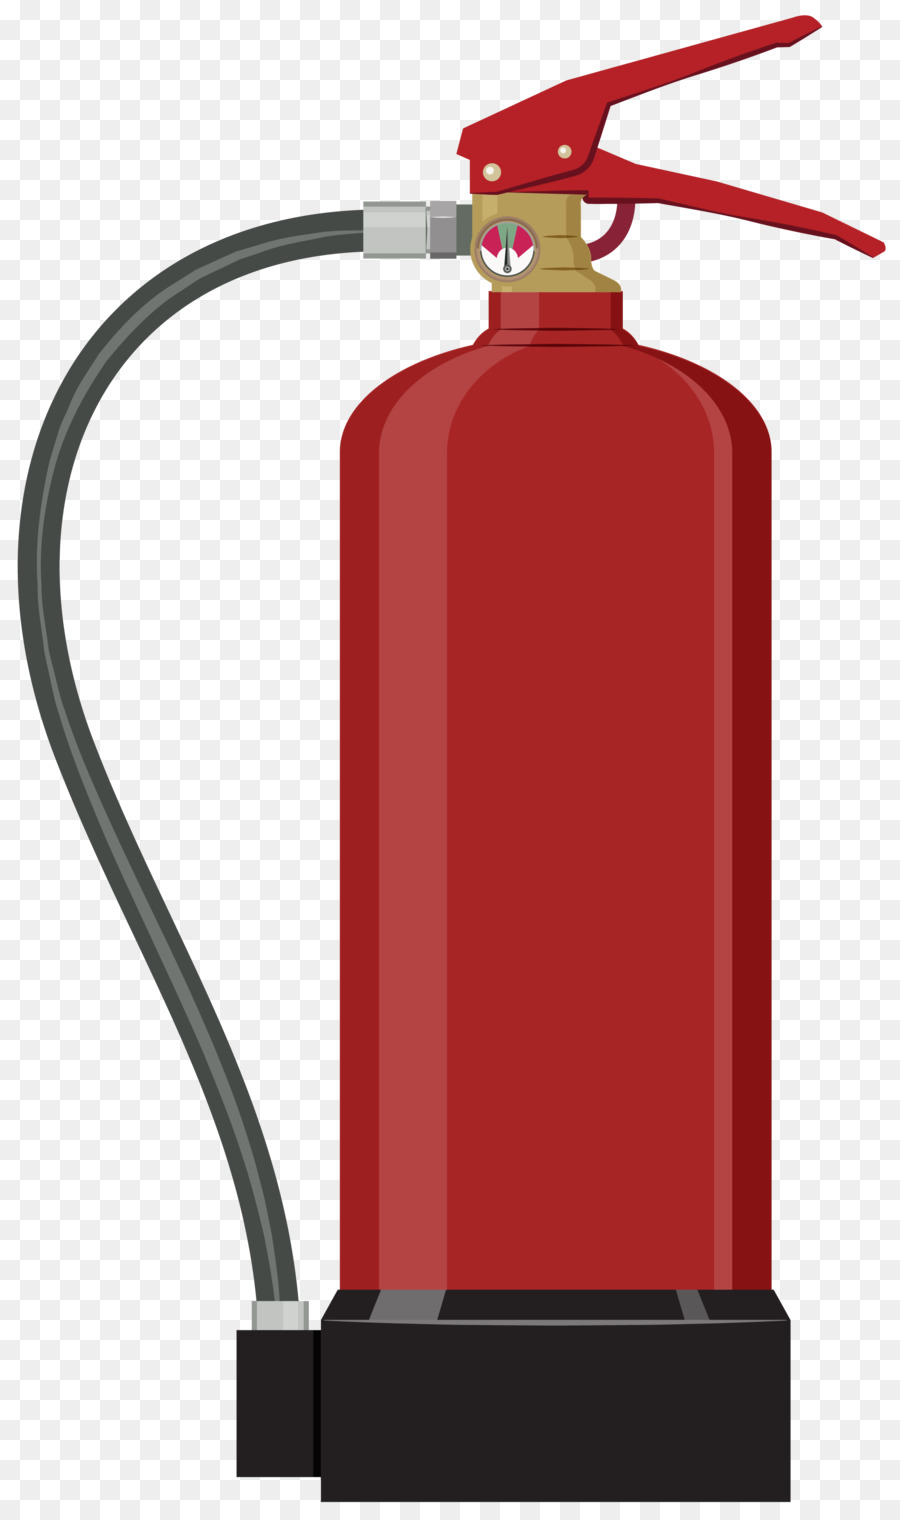 fire extinguishers computer icons clip art extinguisher png rh kisspng com fire extinguisher clip art free fire extinguisher clip art keyboard shortcut